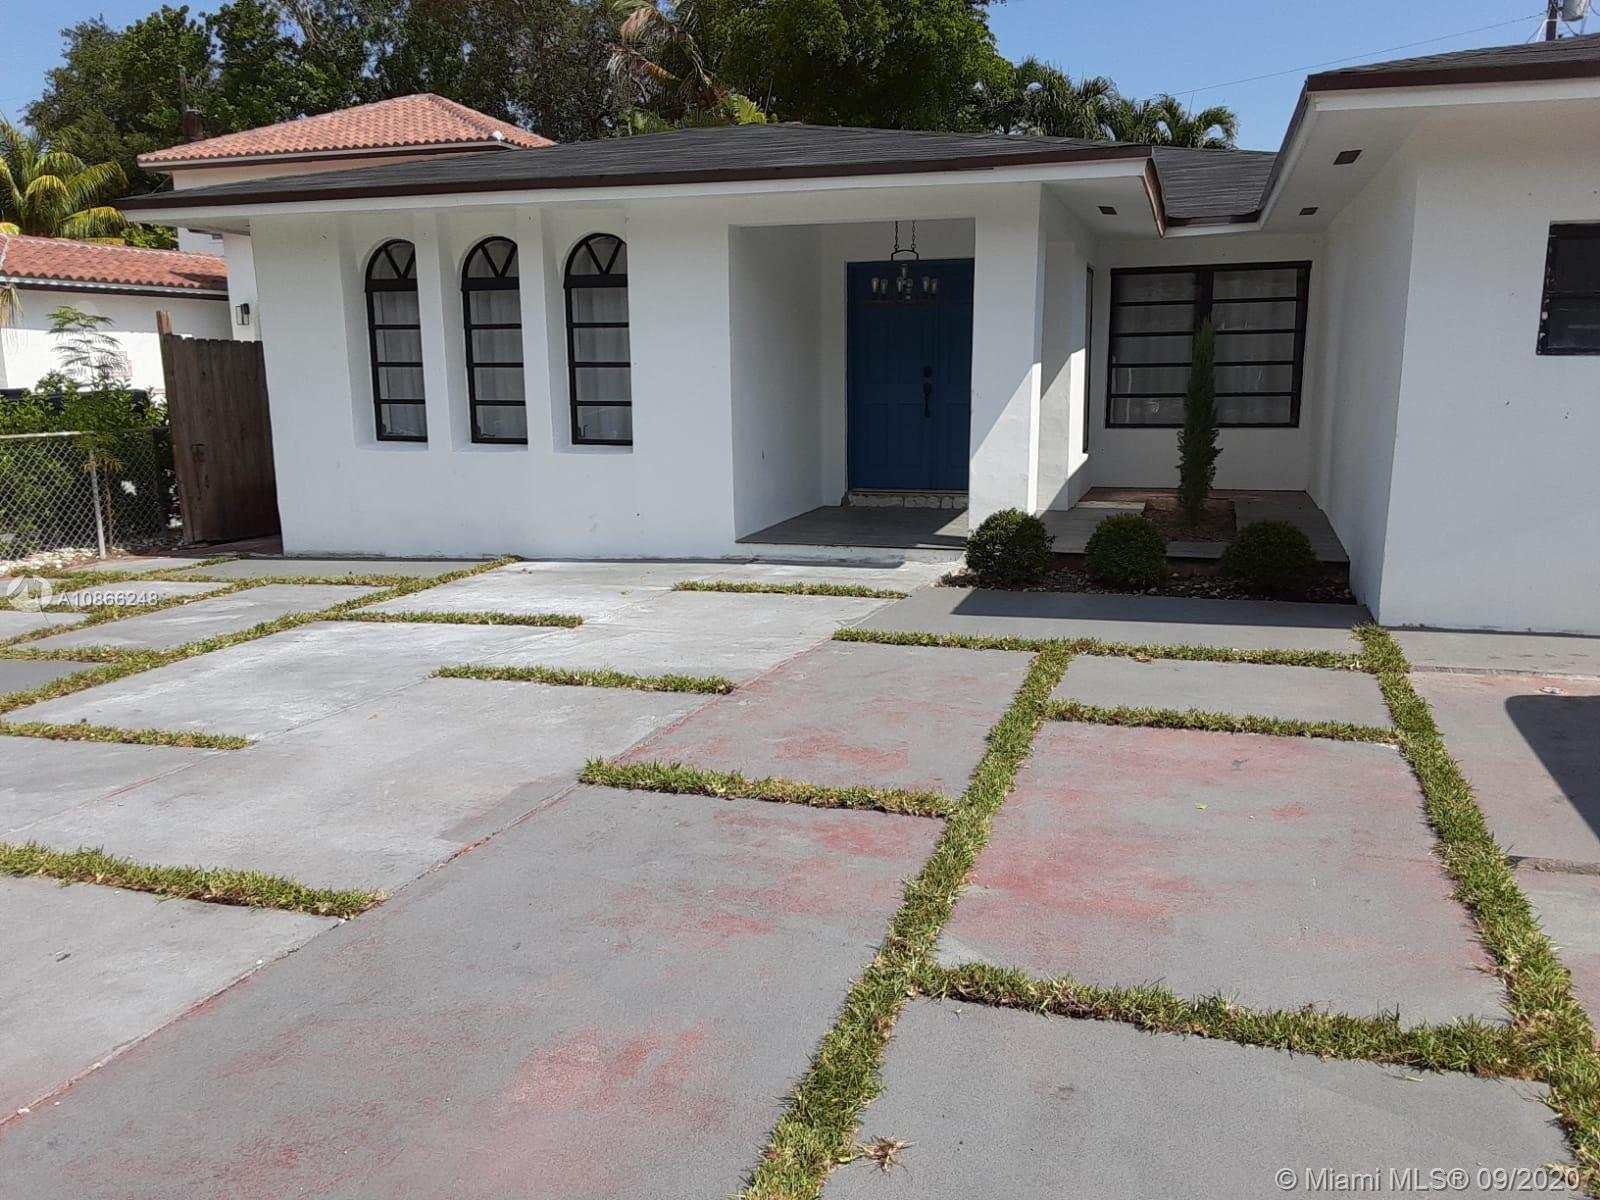 Totally remodeled beautiful house in fantastic area of Coral Gables, close to everything. Like a new.